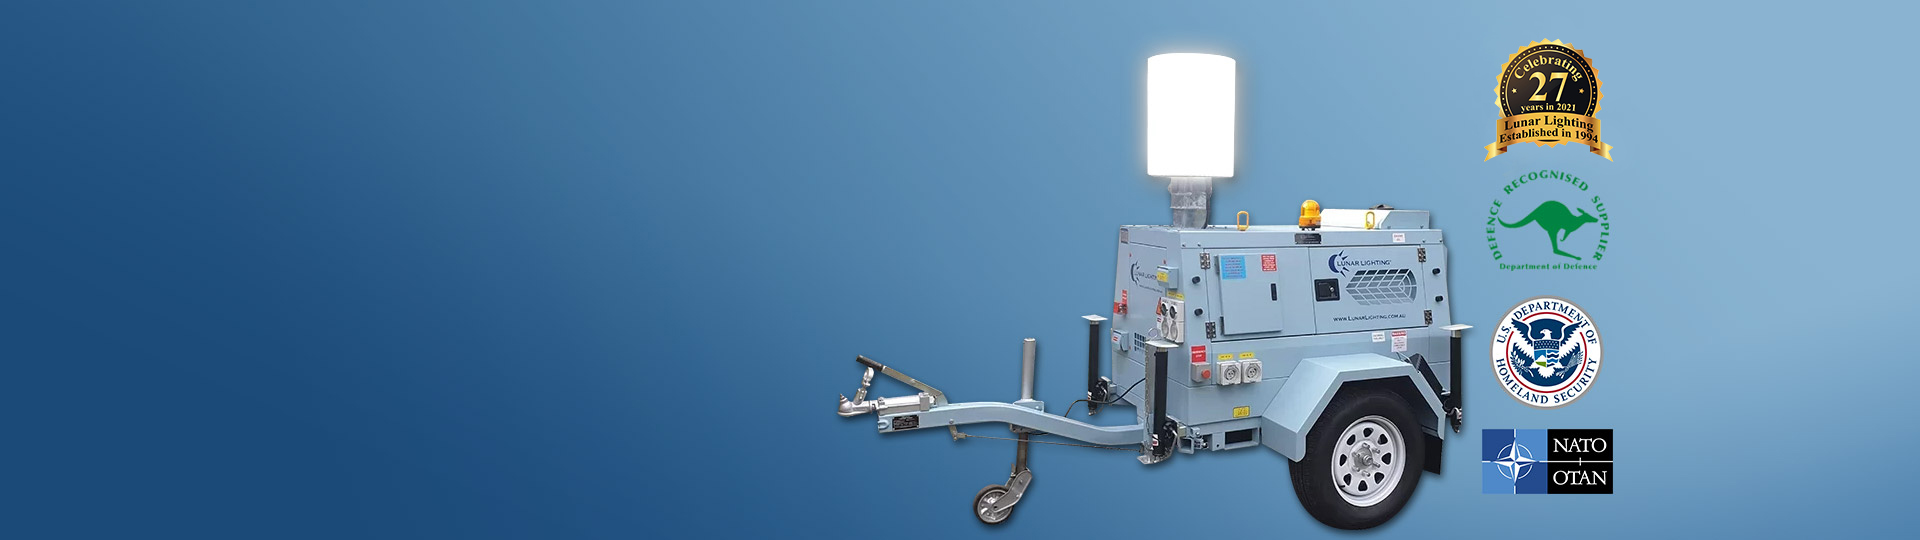 2550W LED Lunar Light Trolly